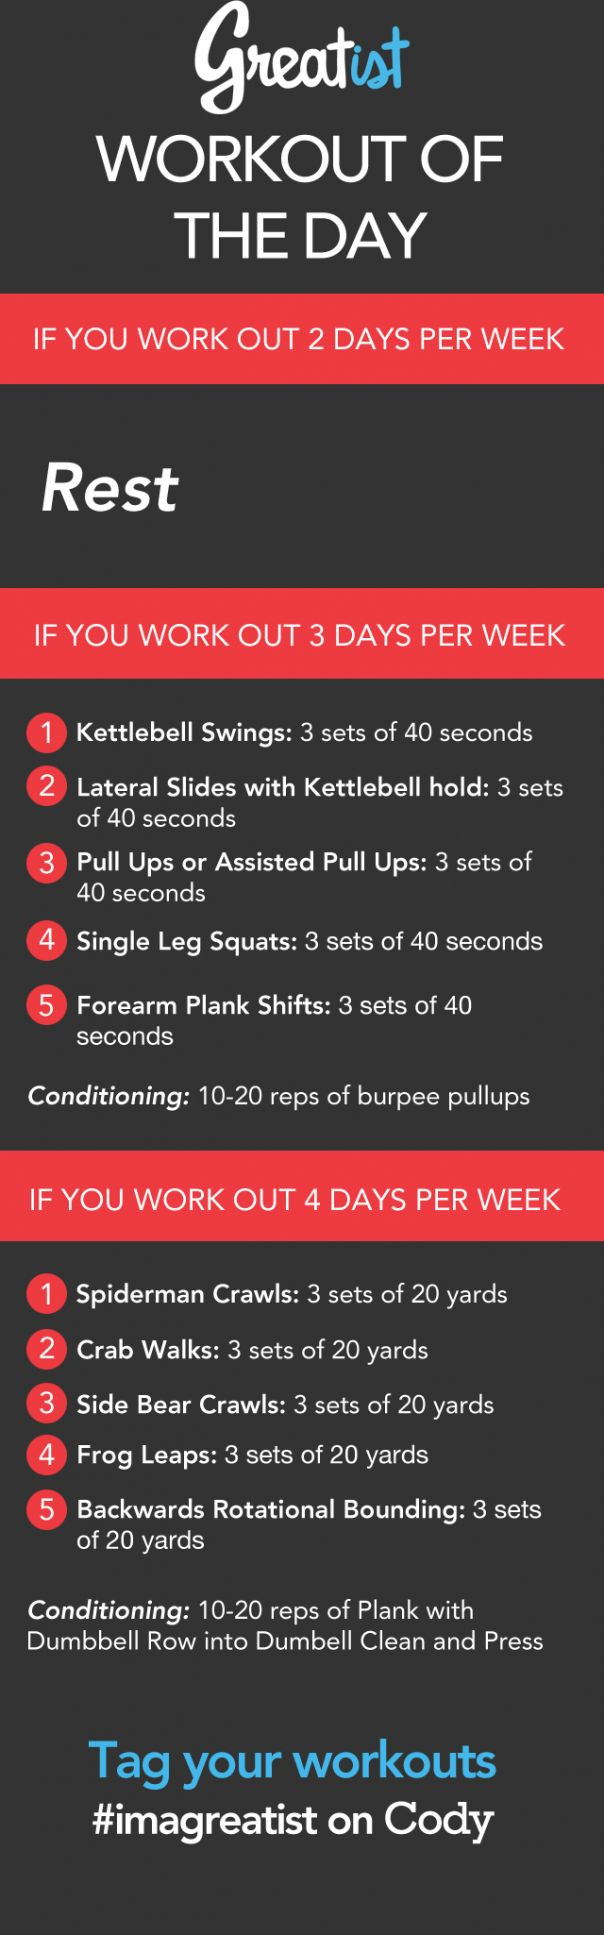 Greatist Workout of the Day: Friday, March 21st